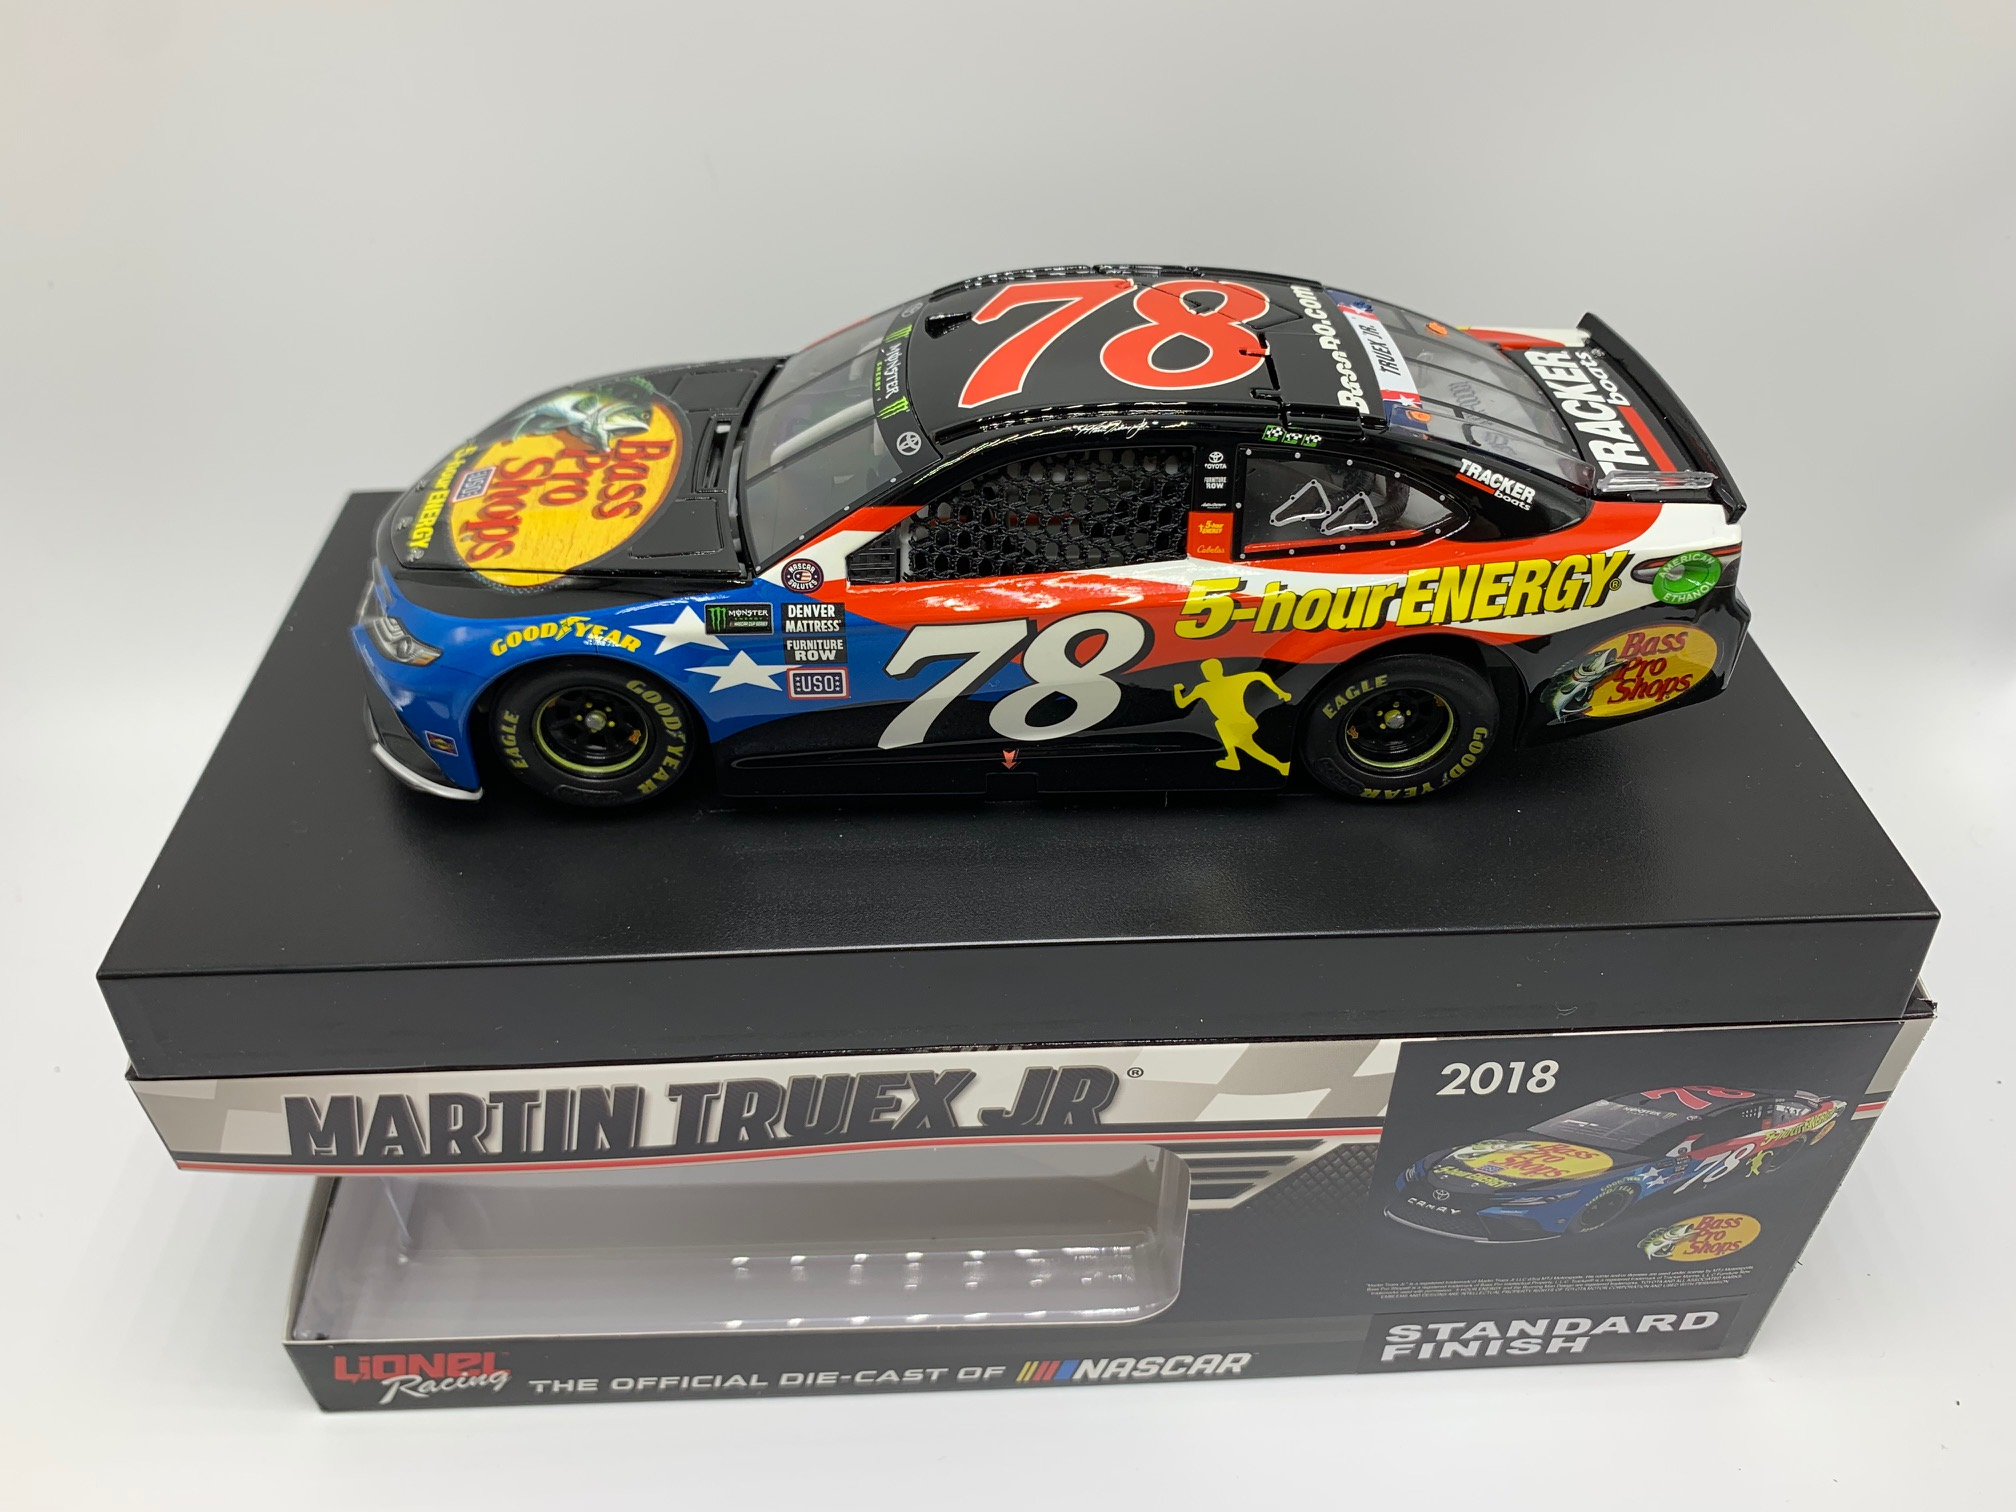 MARTIN TRUEX JR 2018 BASS PRO/5-HOUR ENERGY PATRIOTIC 1:24 ELITE DIN # 1